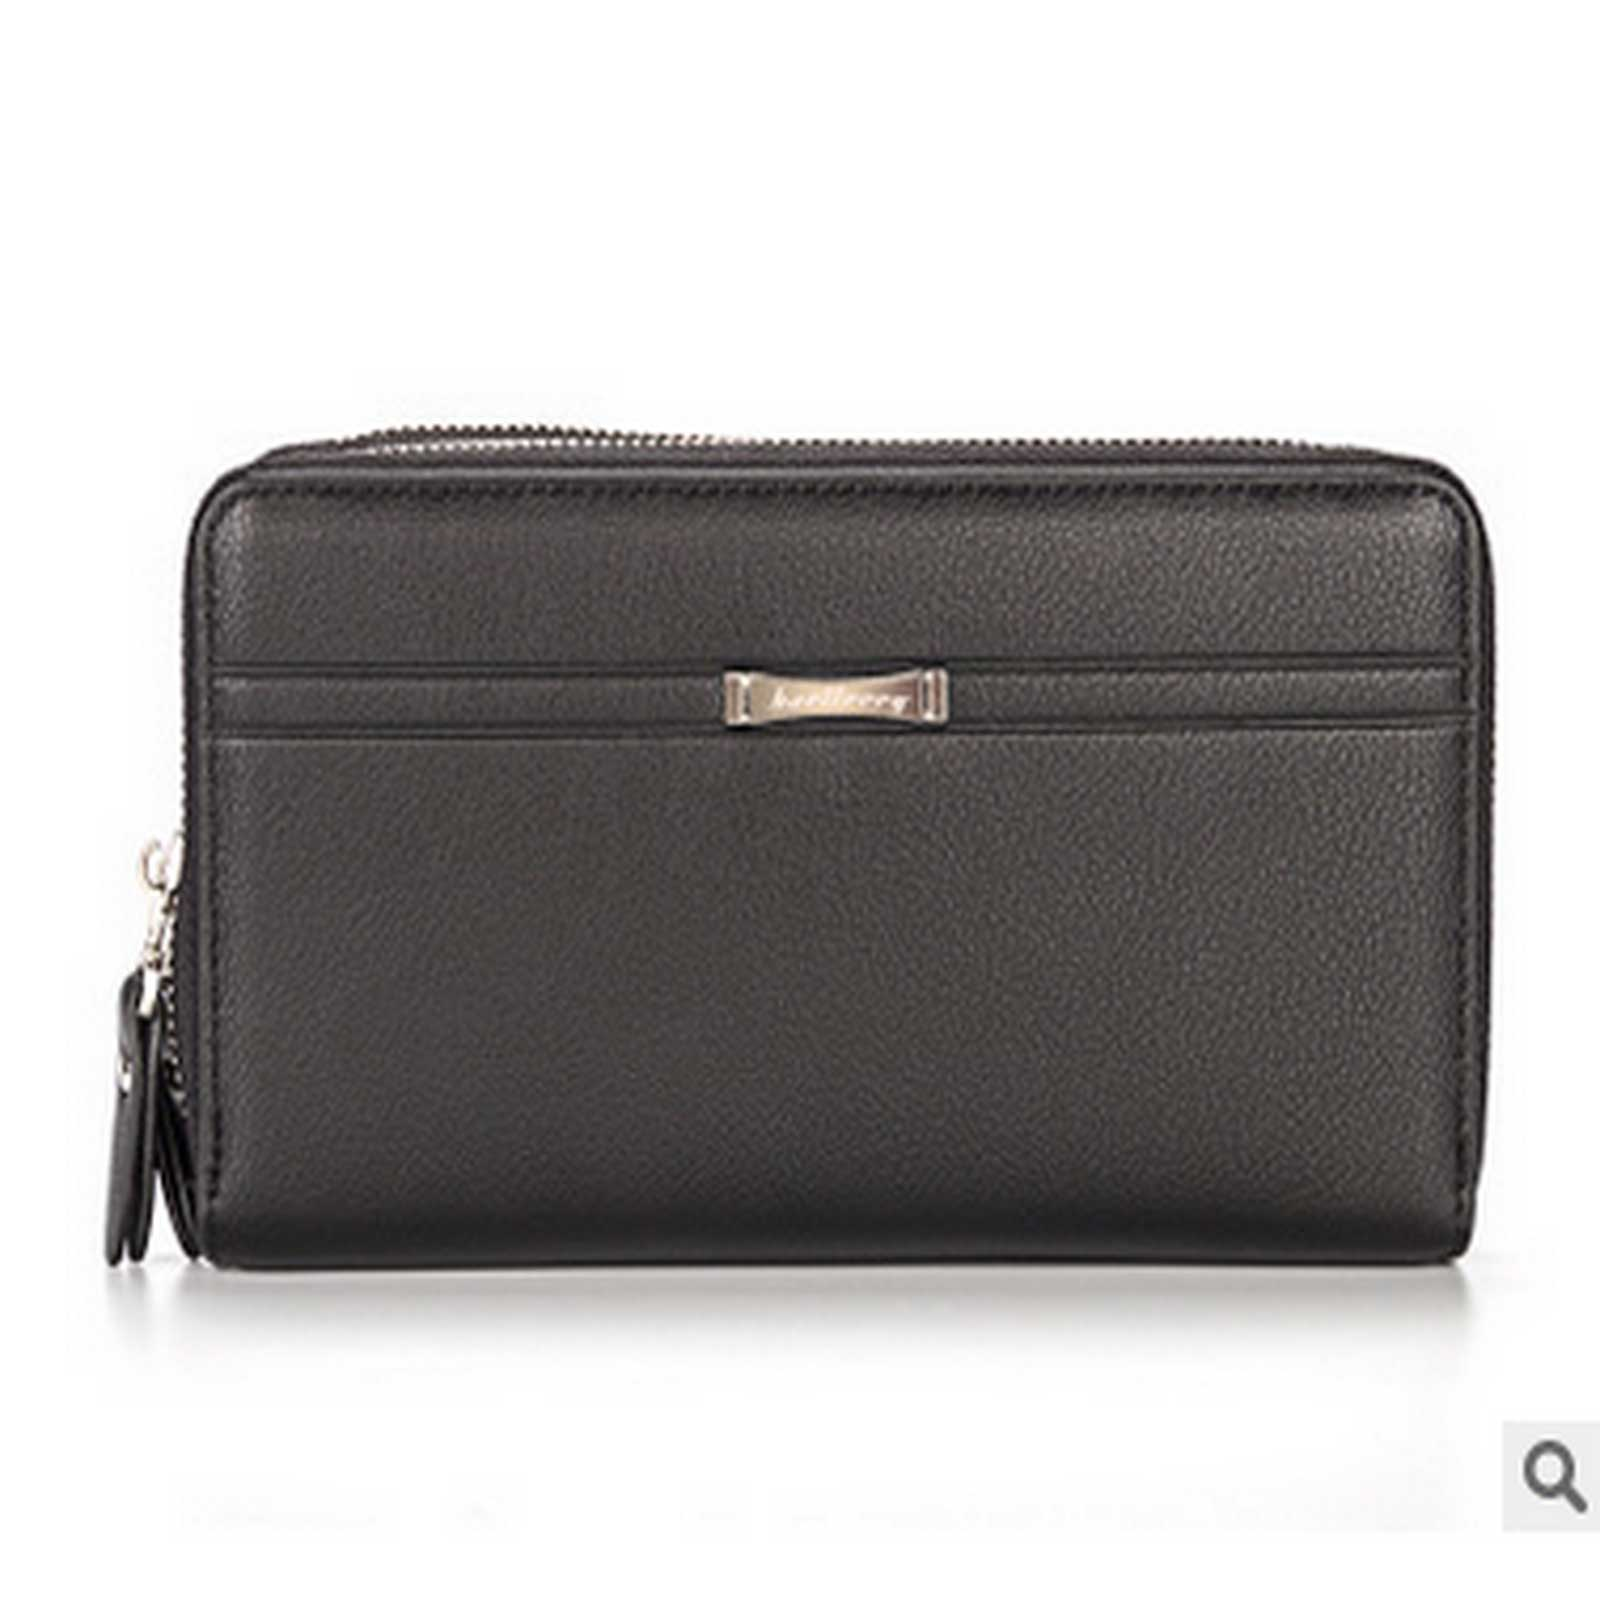 Multifunction-Casual-Business-Dual-Zippers-Hand-Bag-Men-039-s-Leather-Wallet